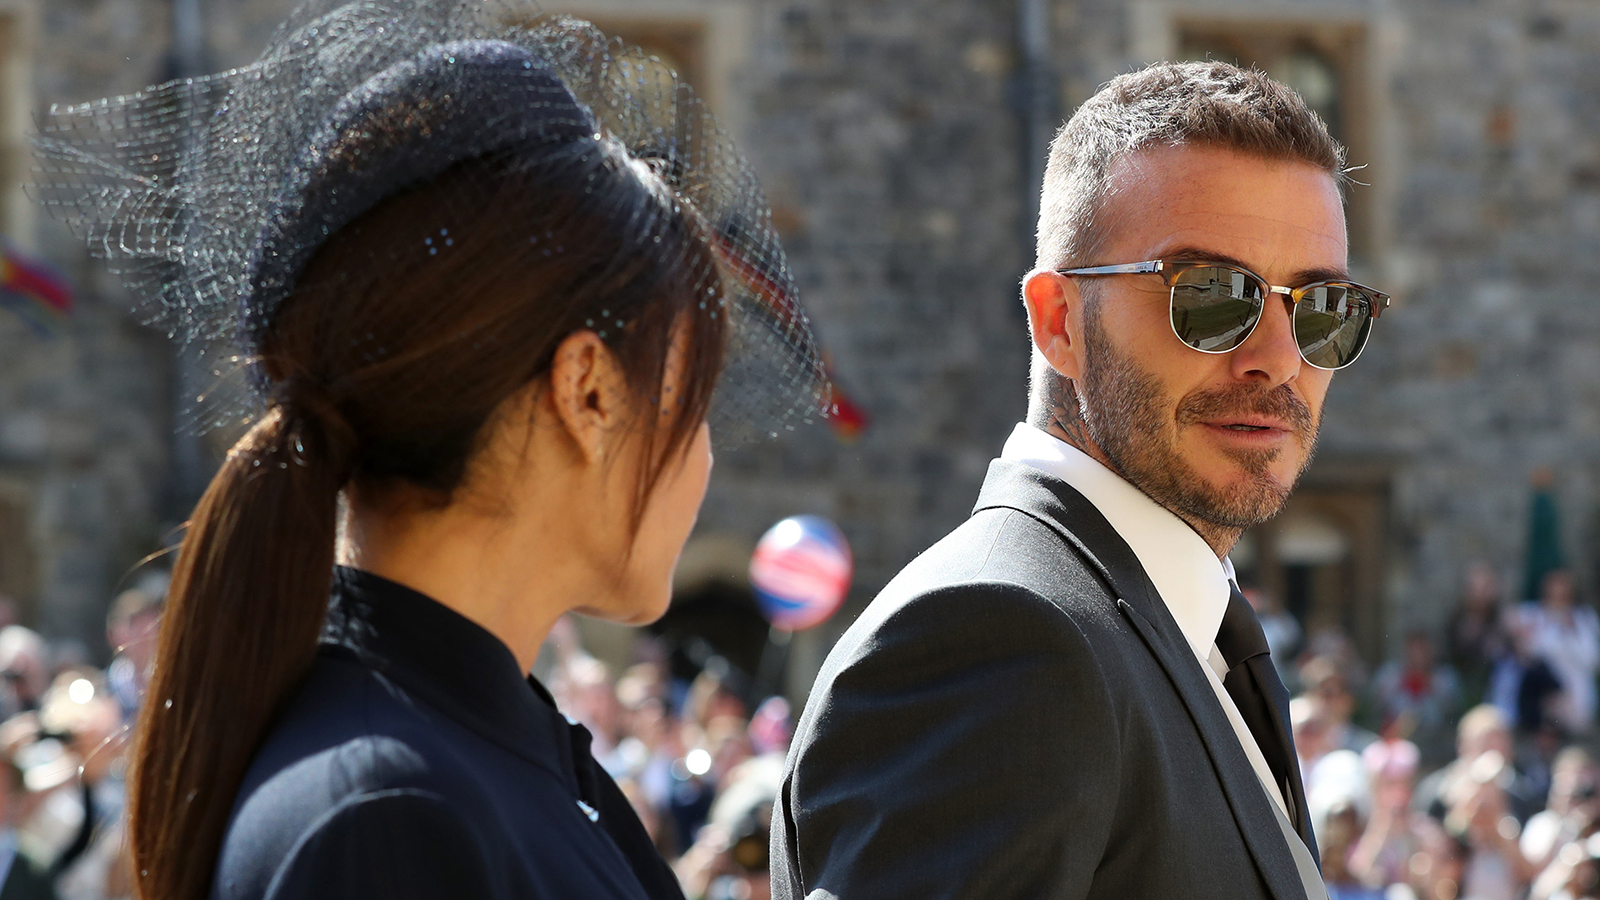 Style Lessons From The Best Dressed Guys At The Royal Wedding